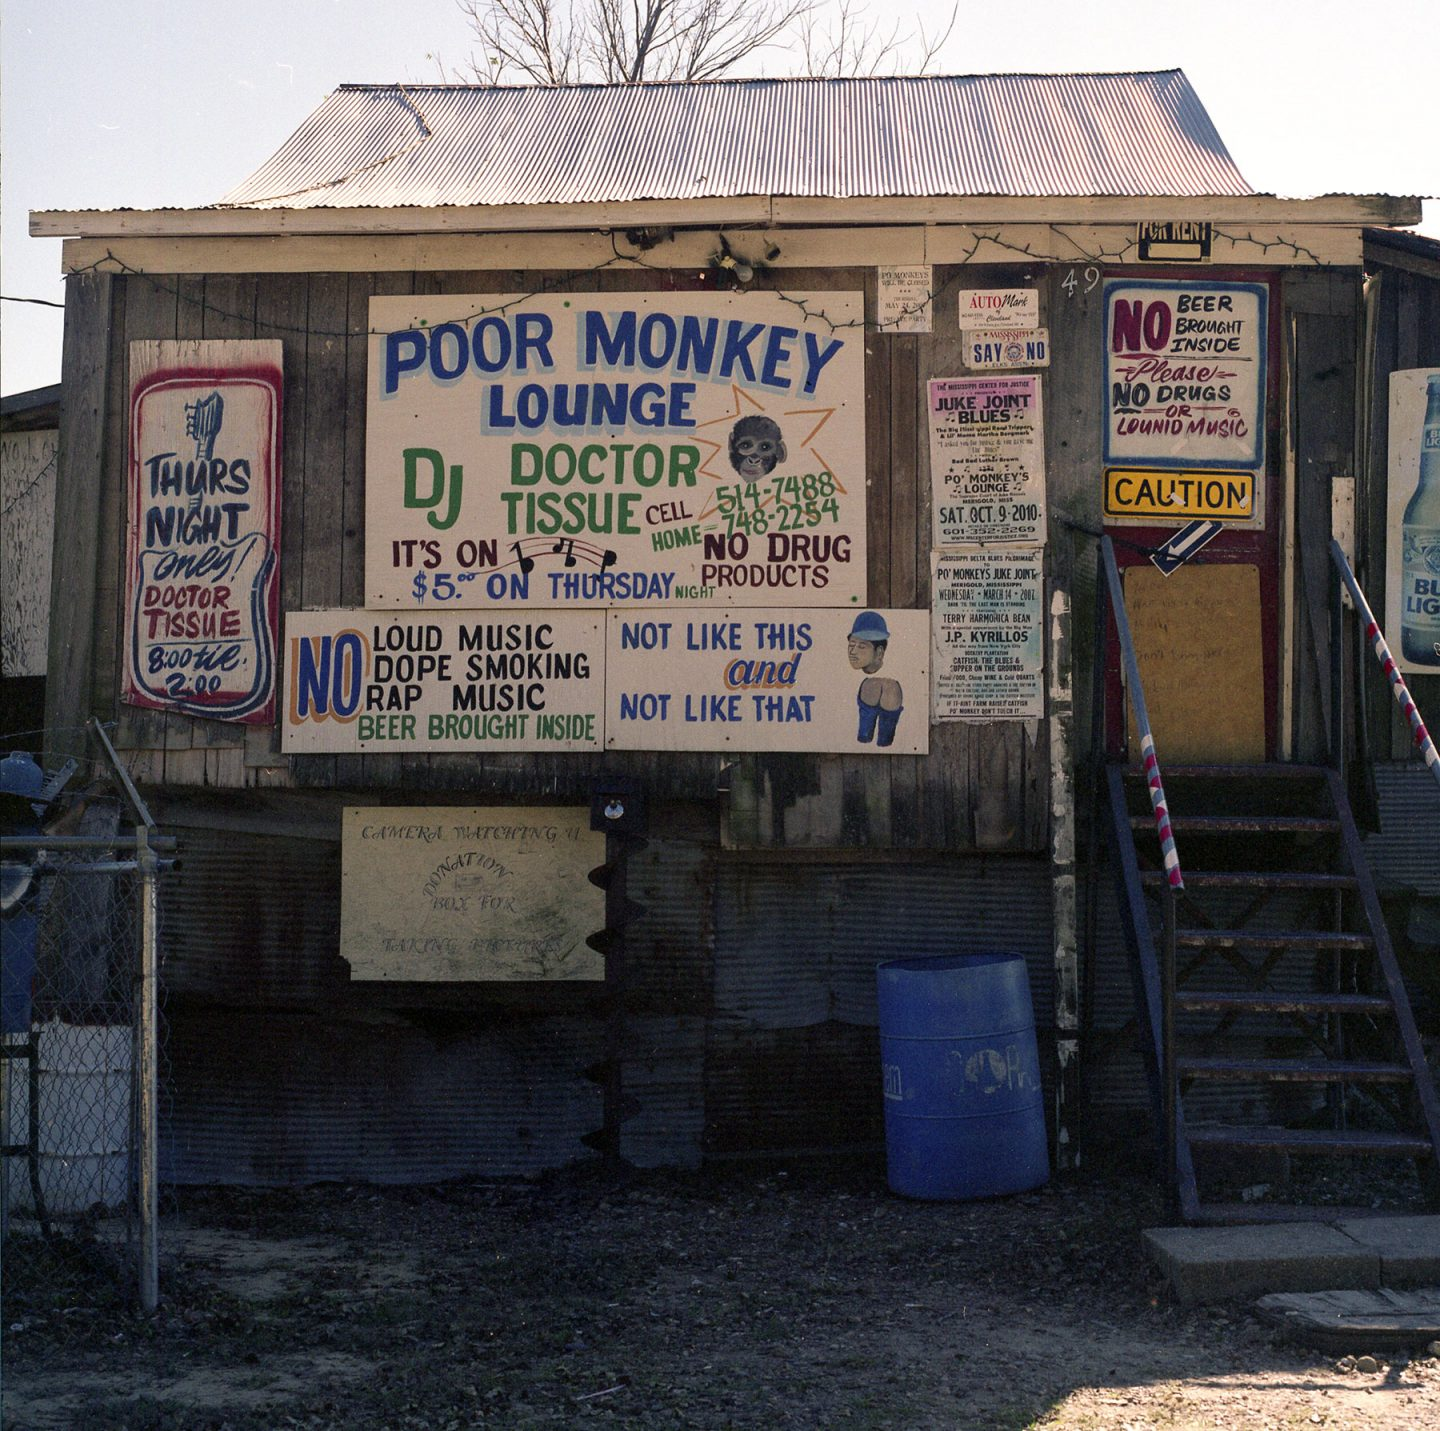 Po' Monkey's lounge – Hasselblad 500cm Medium Format analog film